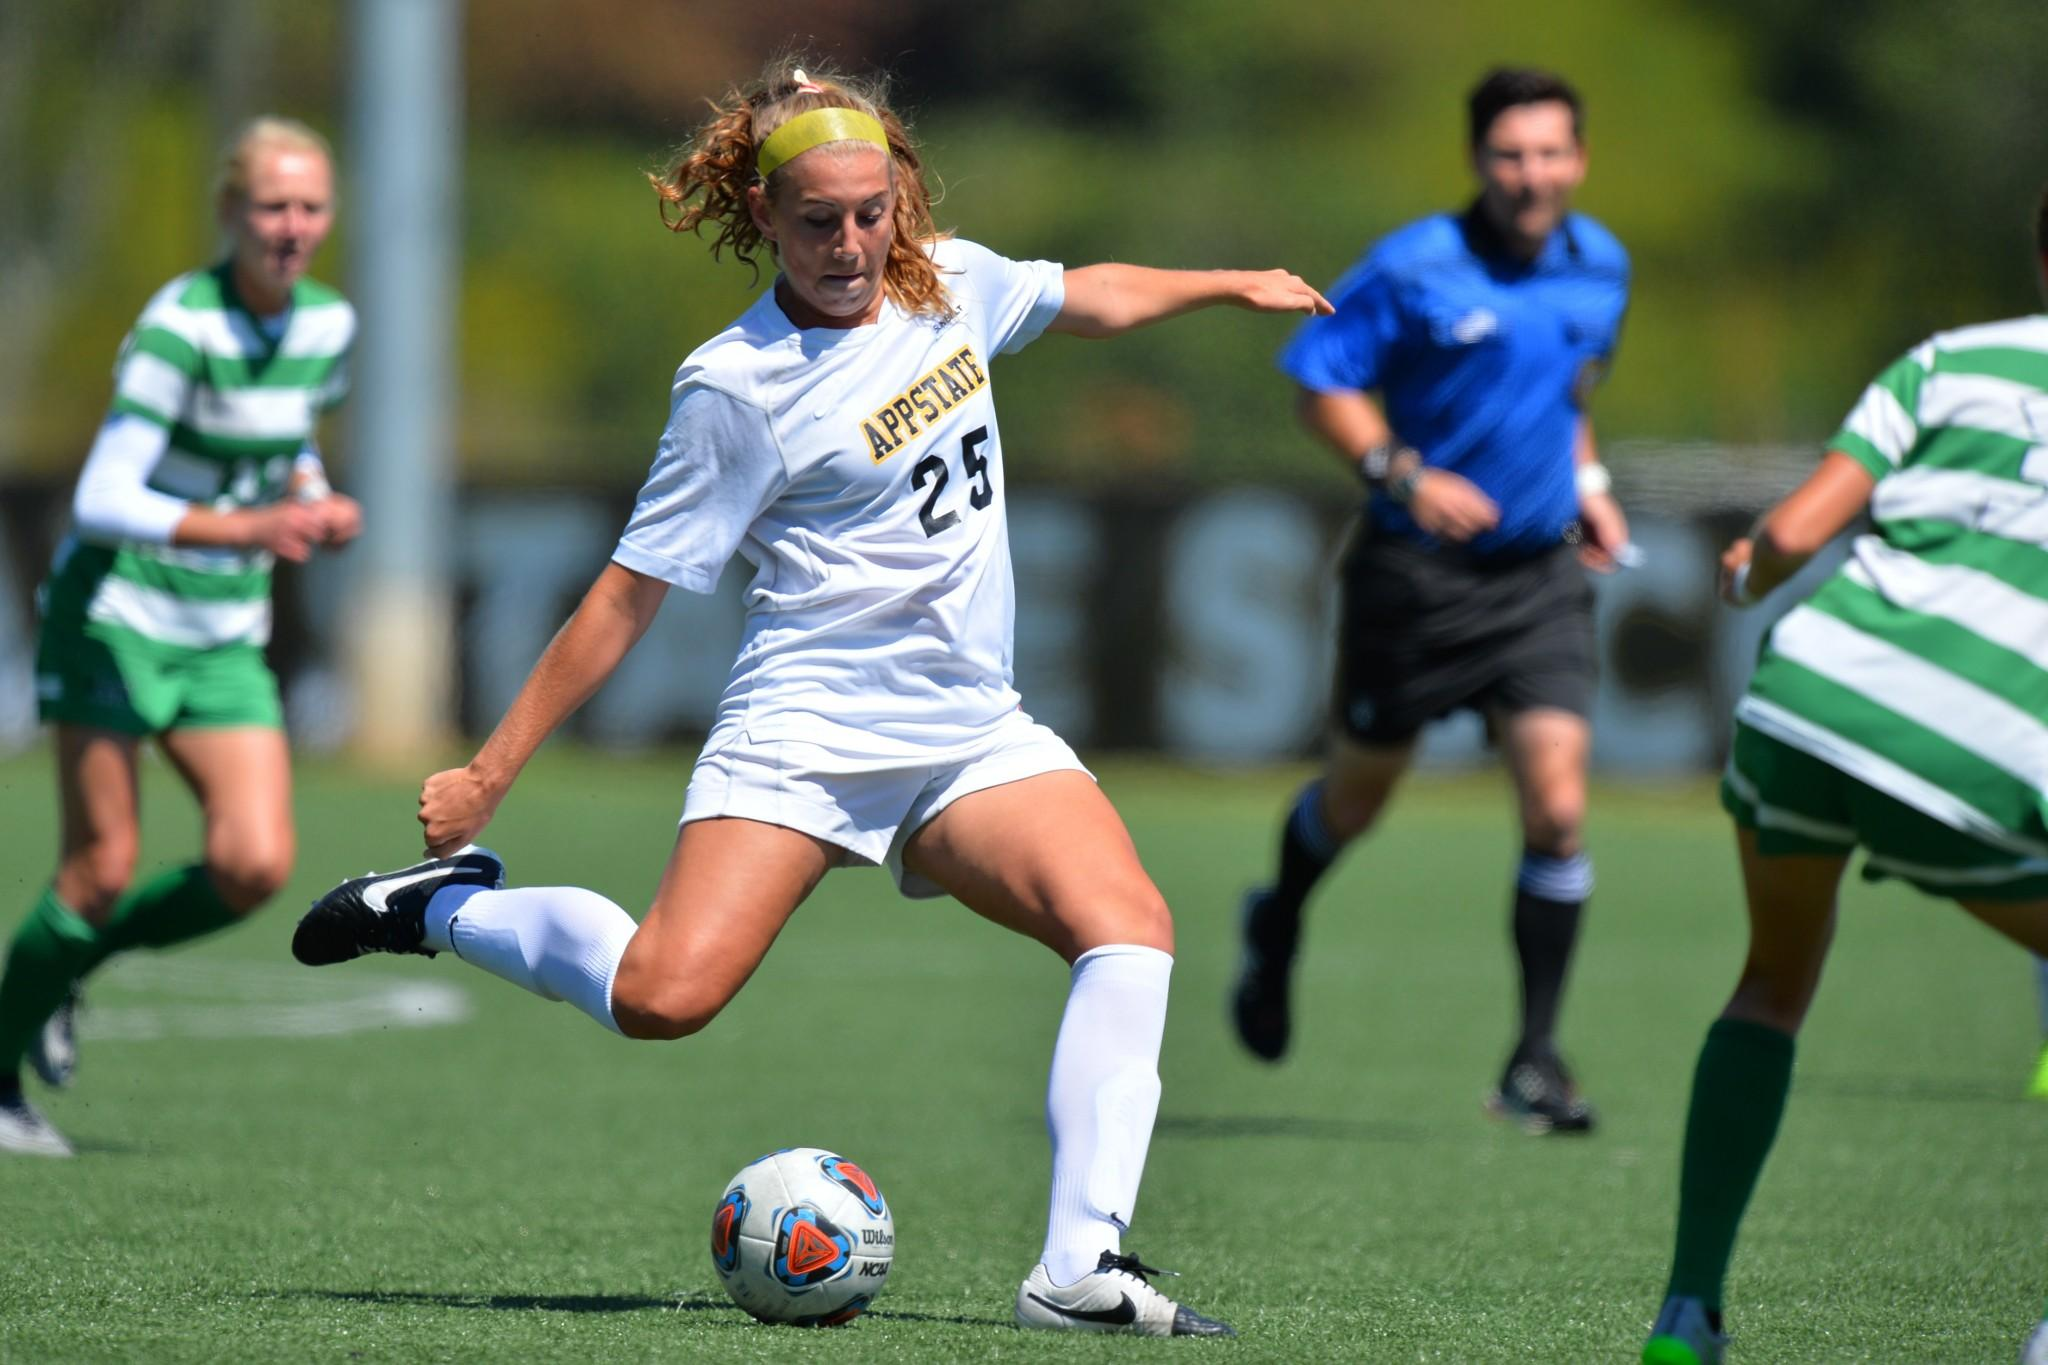 13 September 2015: Appalachian State ended their contest with Marshall with a 0-0 (2OT) tie Sunday afternoon at Ted Mackorell Soccer Complex in Boone, North Carolina.  Credit - Tim Cowie - Tim Cowie Photography